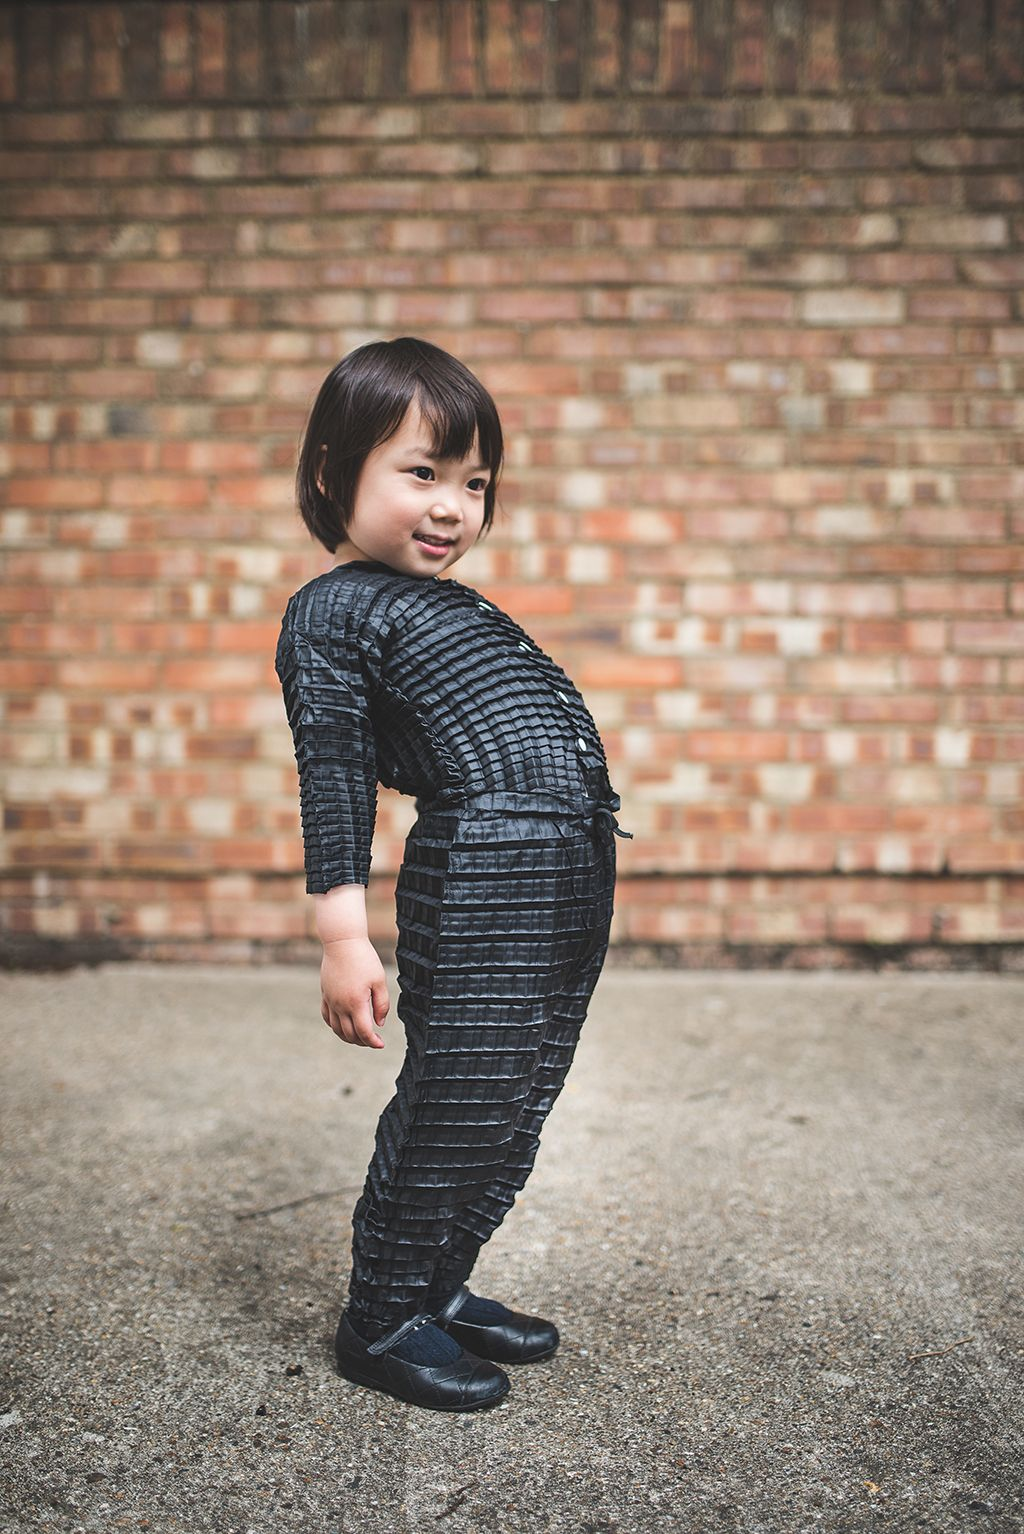 Chic Children's Clothing That Grow With Your Little One